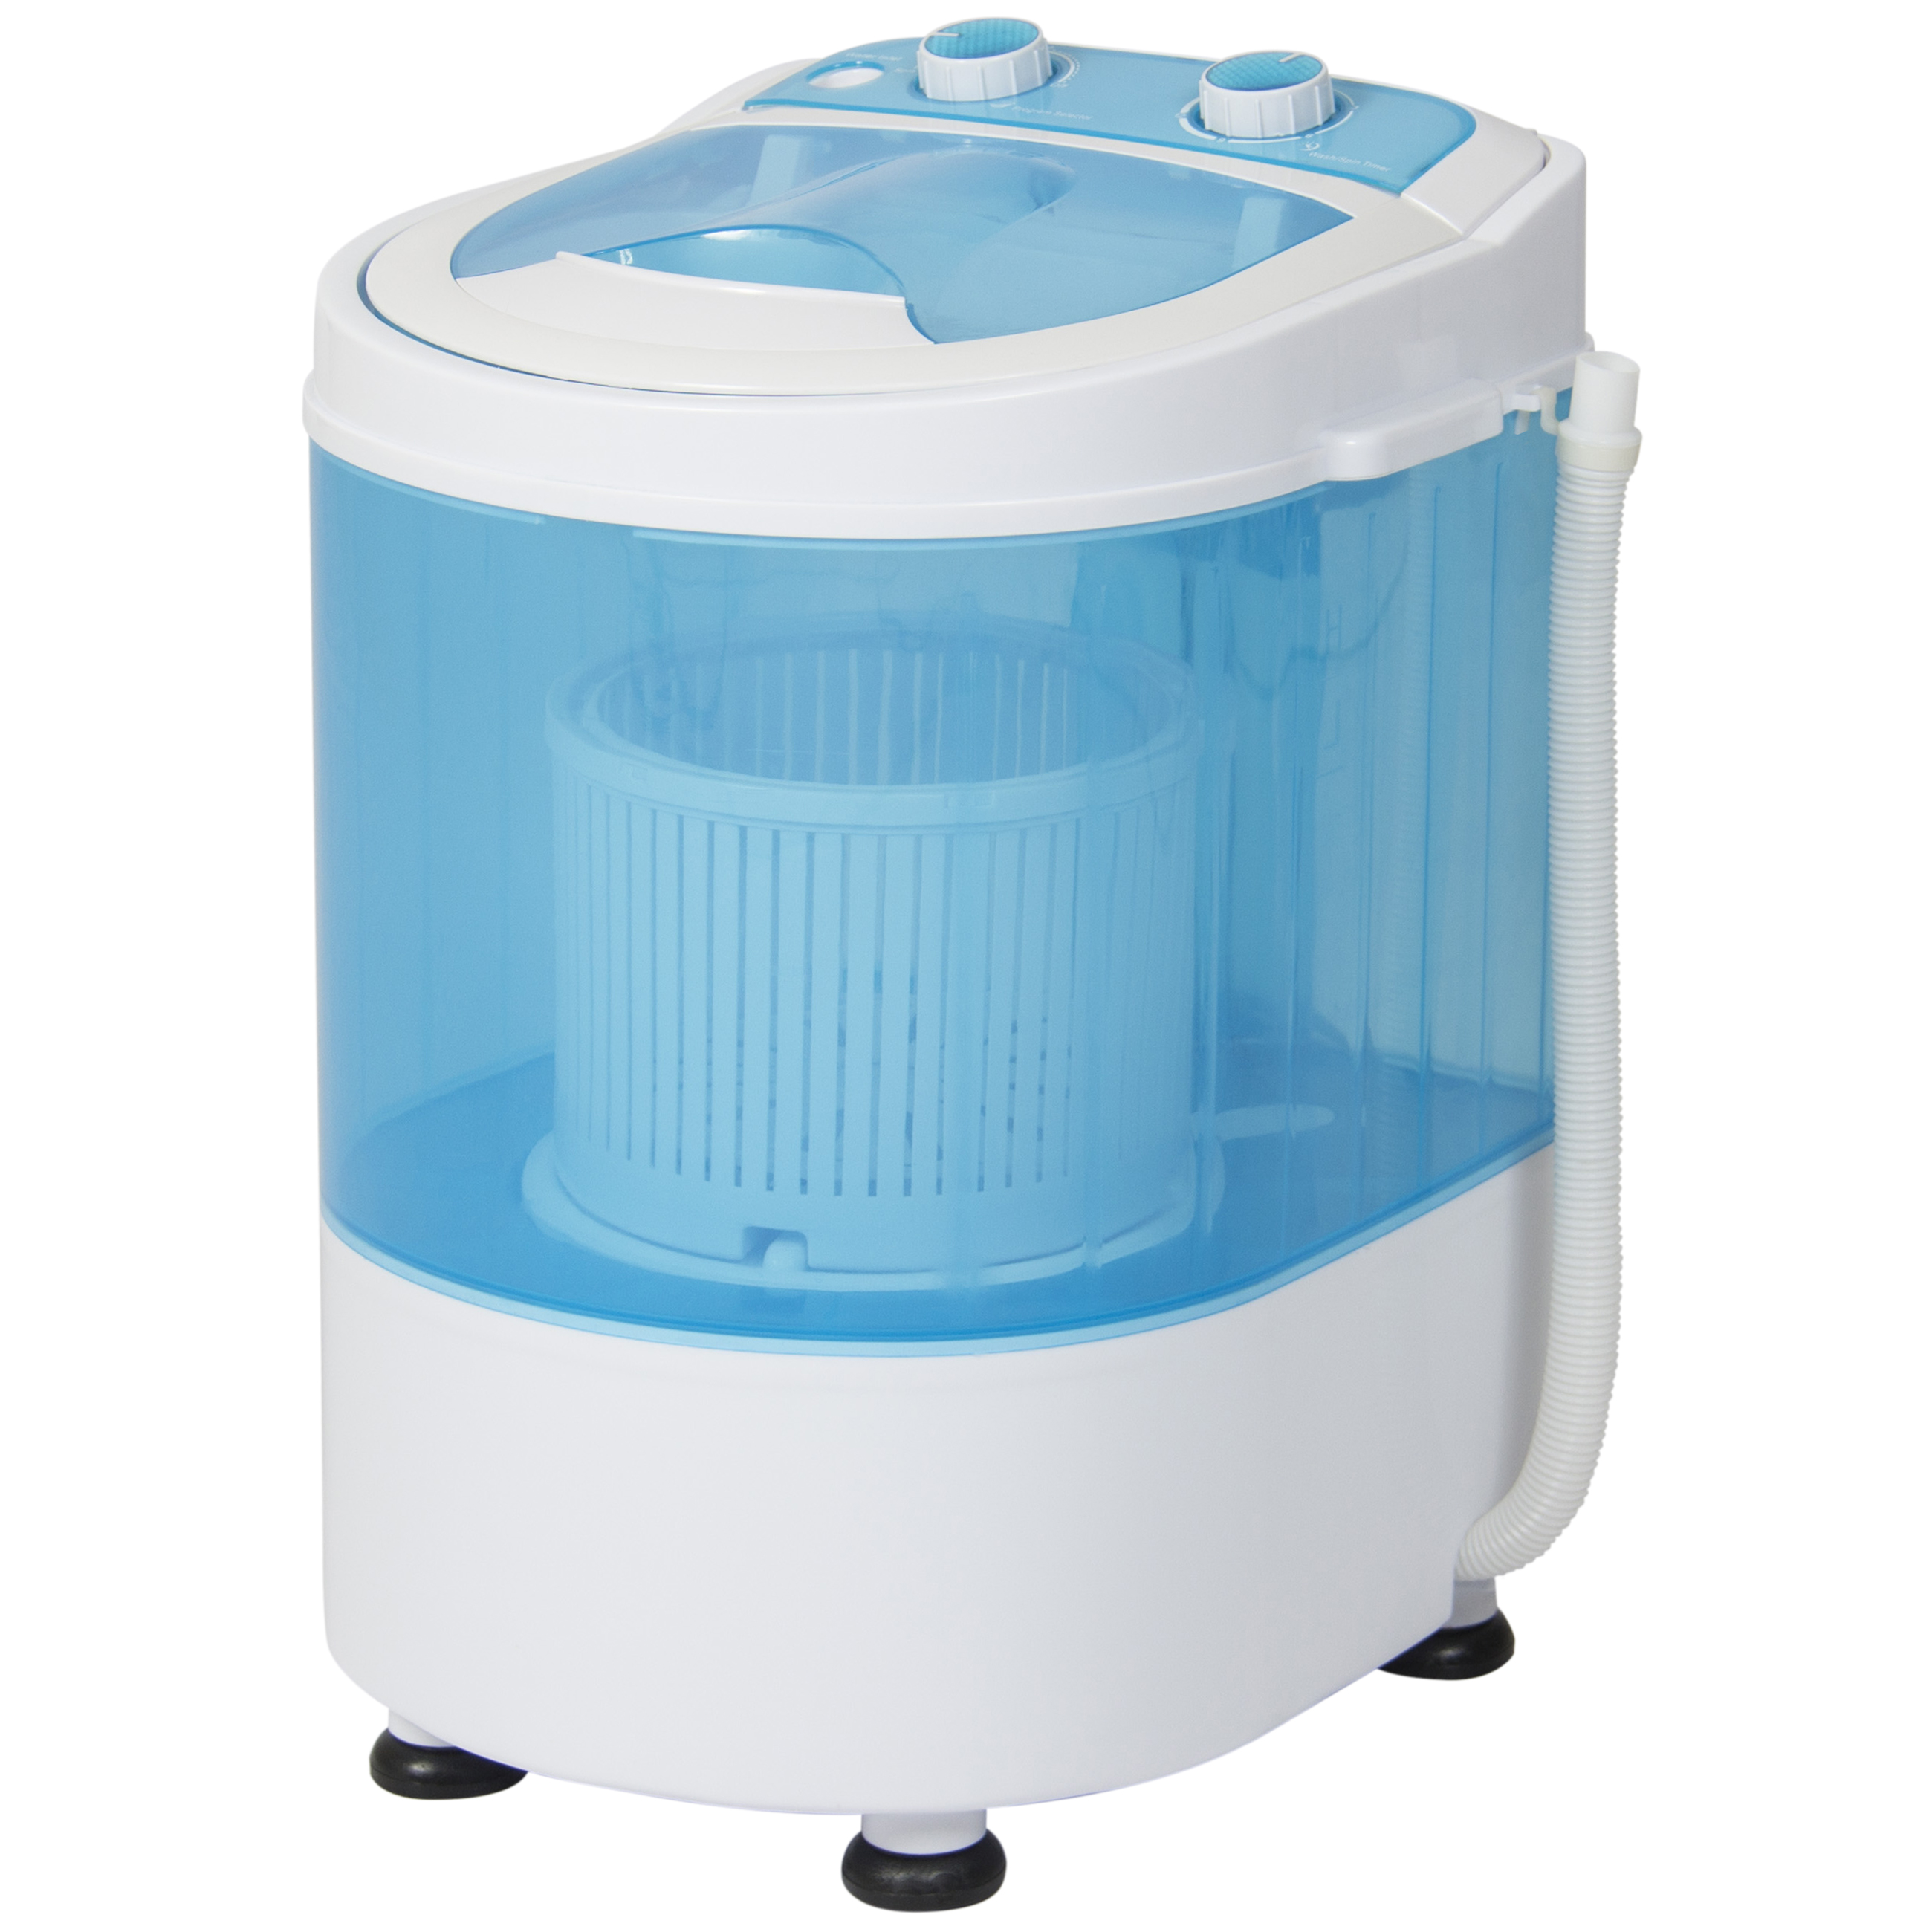 Best Choice Products Portable Mini Washing Machine Spin Cycle W/ Basket, Drainage